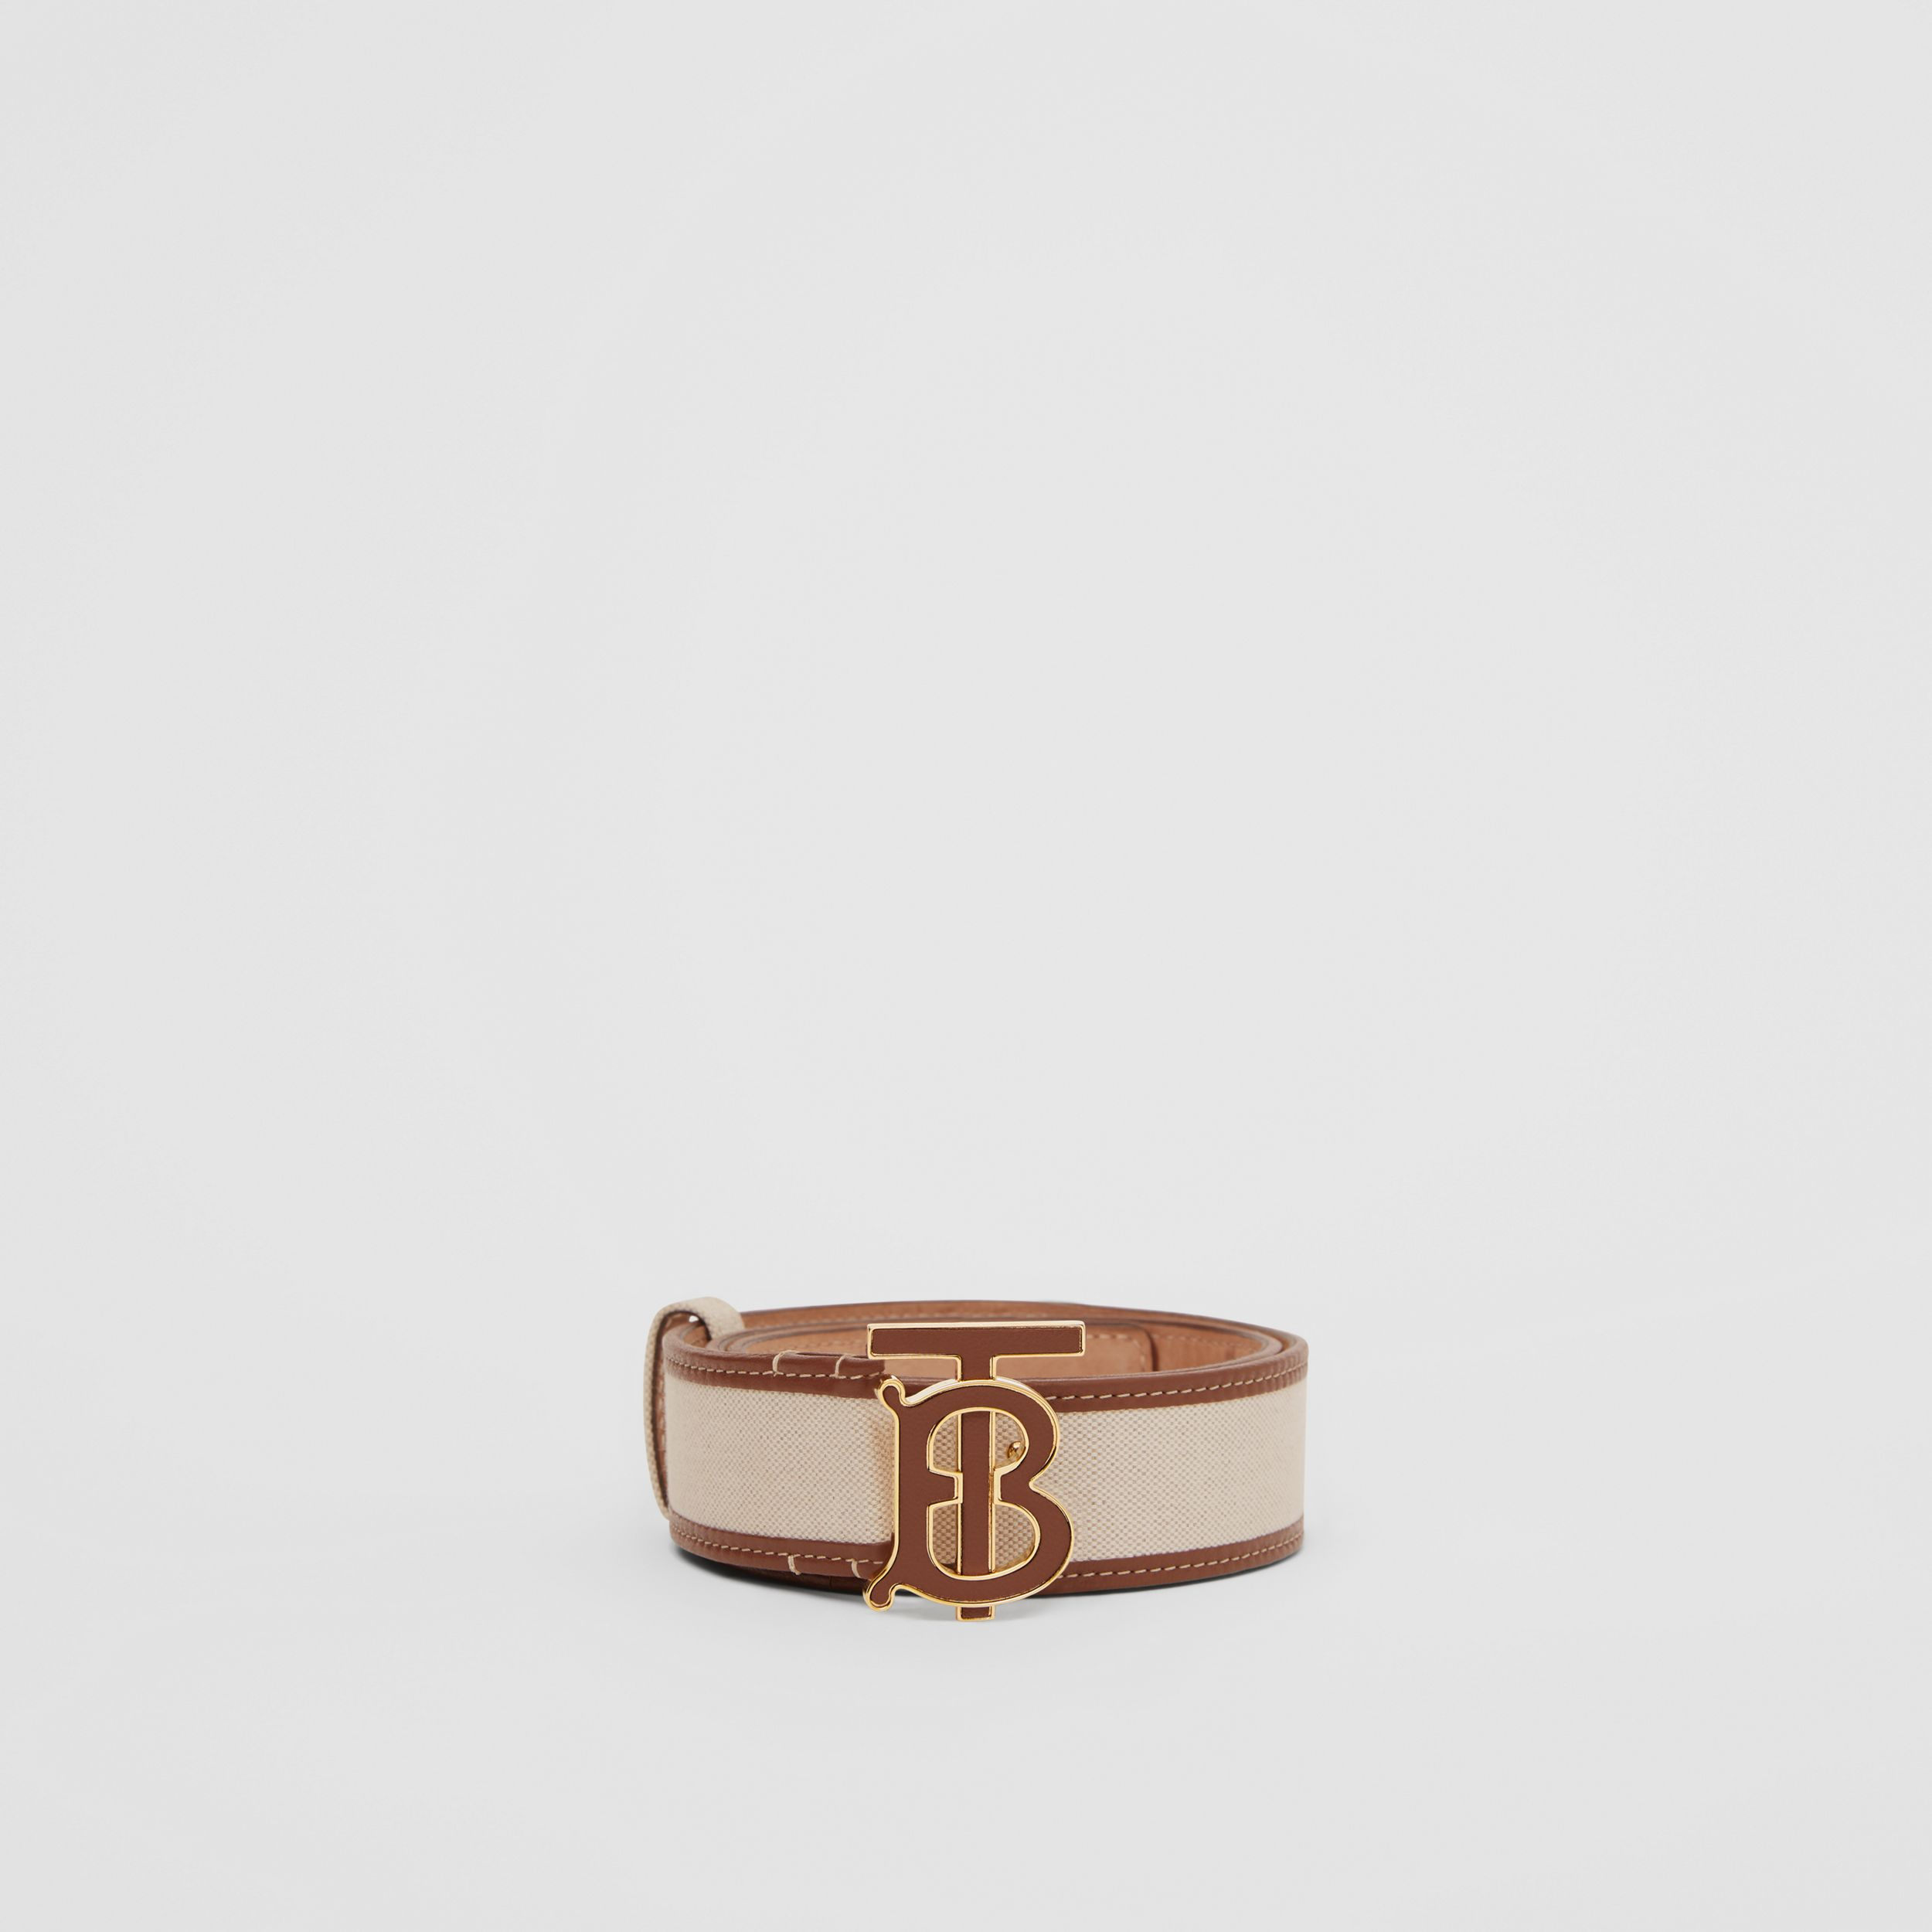 Monogram Motif Canvas and Leather Belt in Natural - Women | Burberry United Kingdom - 4